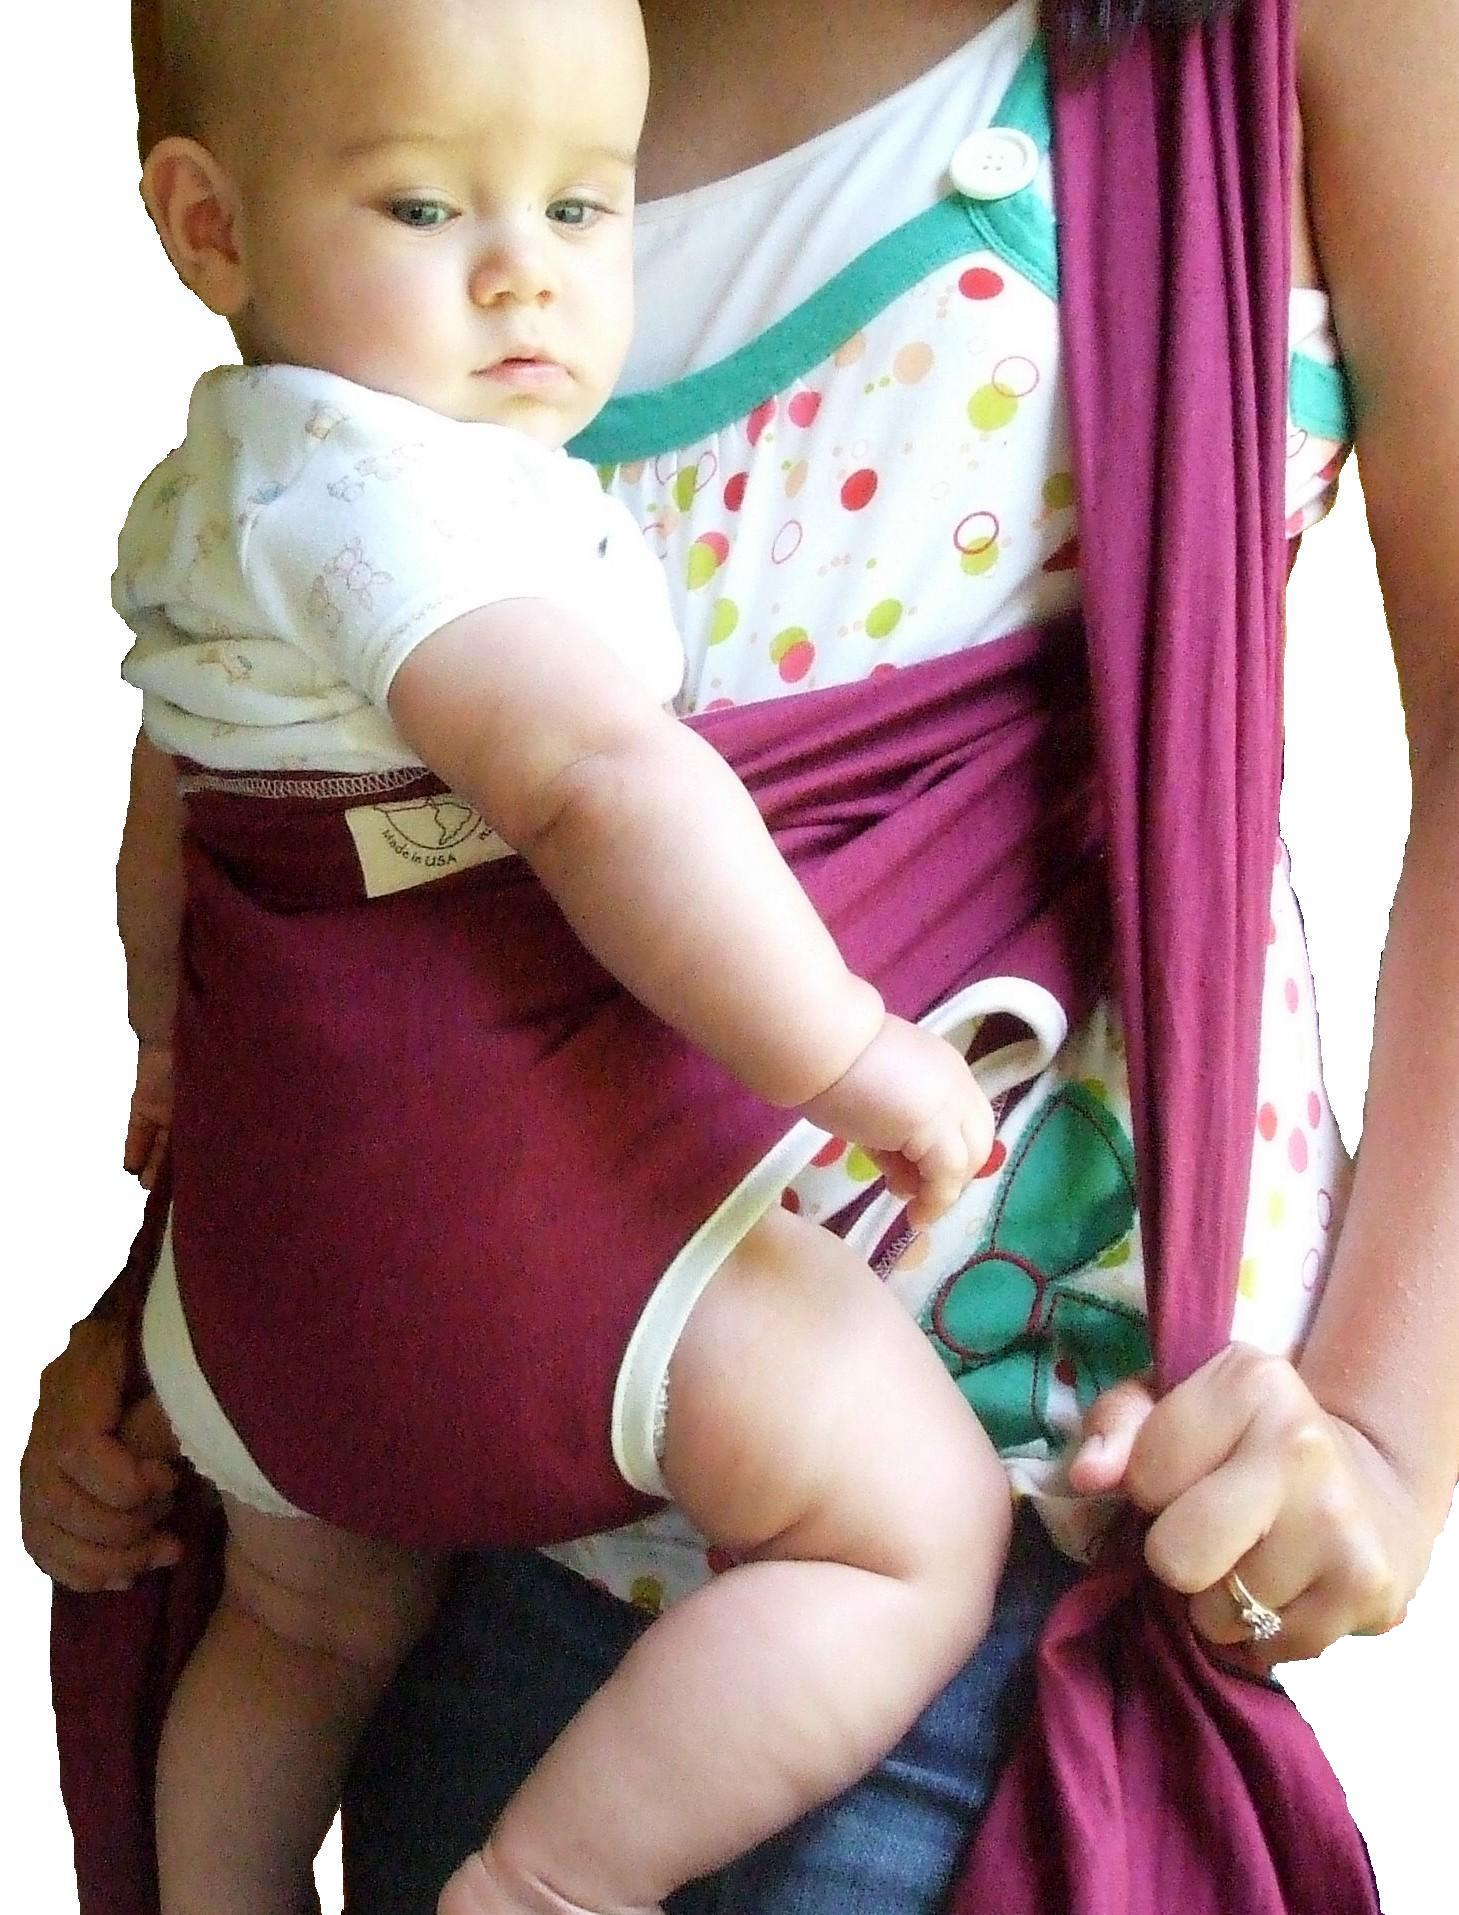 Classic Bundleboo 10-in-1 baby carriers